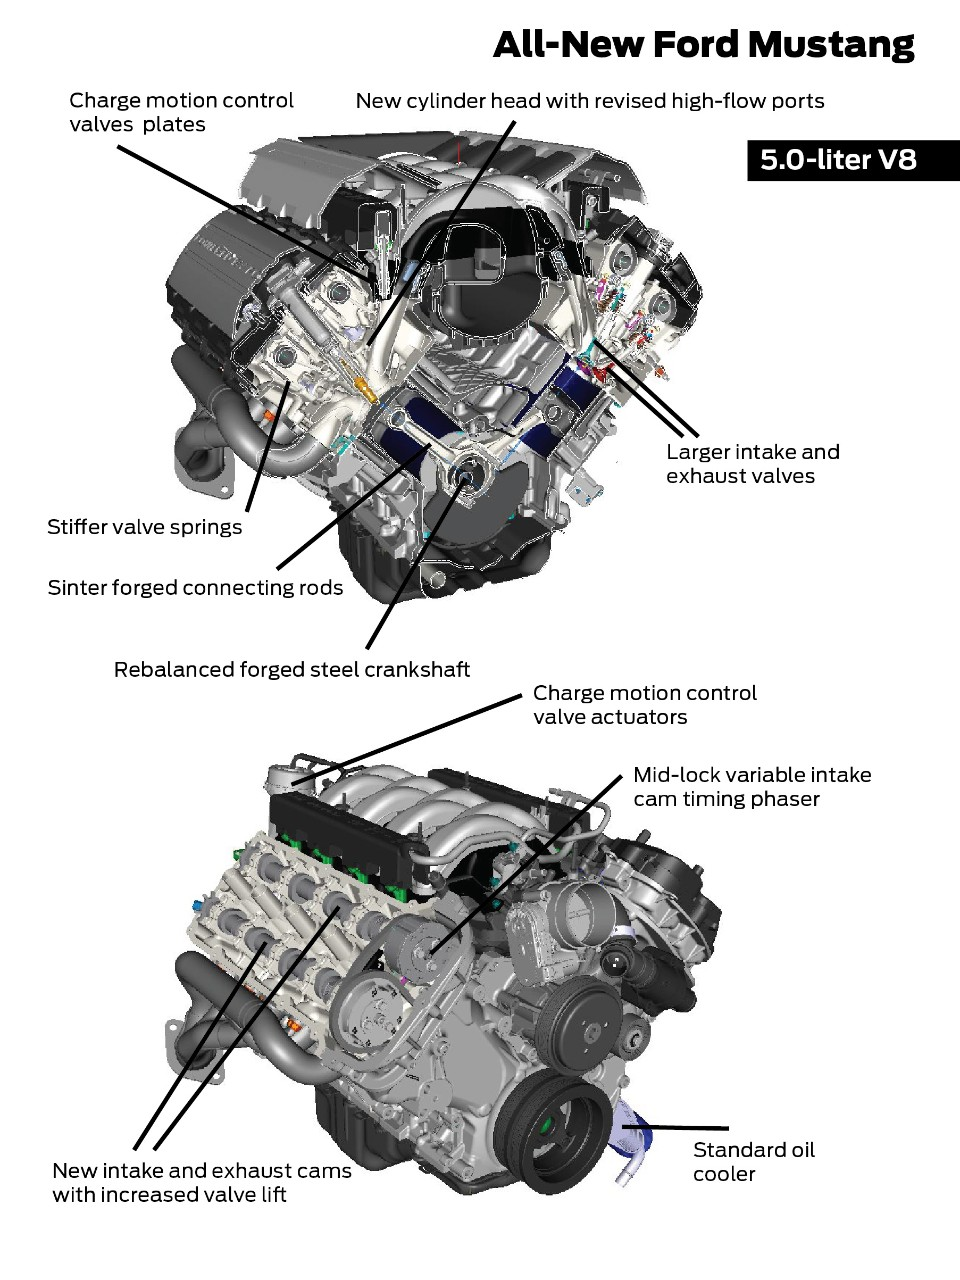 2015 17 Ford Coyote Mustang Specs 50l Engine Lmr Fire Drivetrain Diagram V8 50